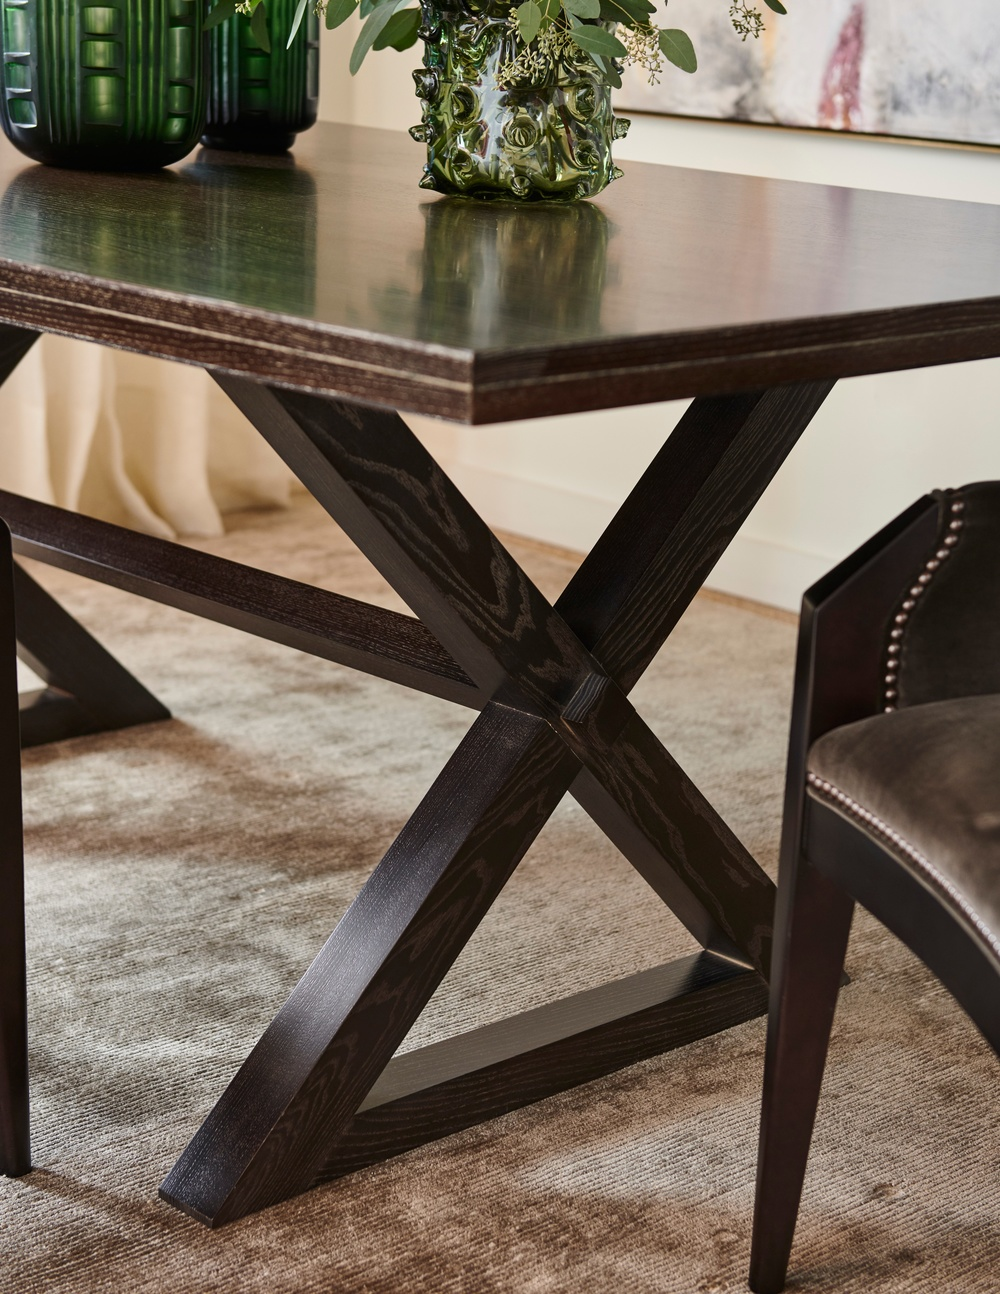 Hickory Chair - Freya Dining Table with Suit Base